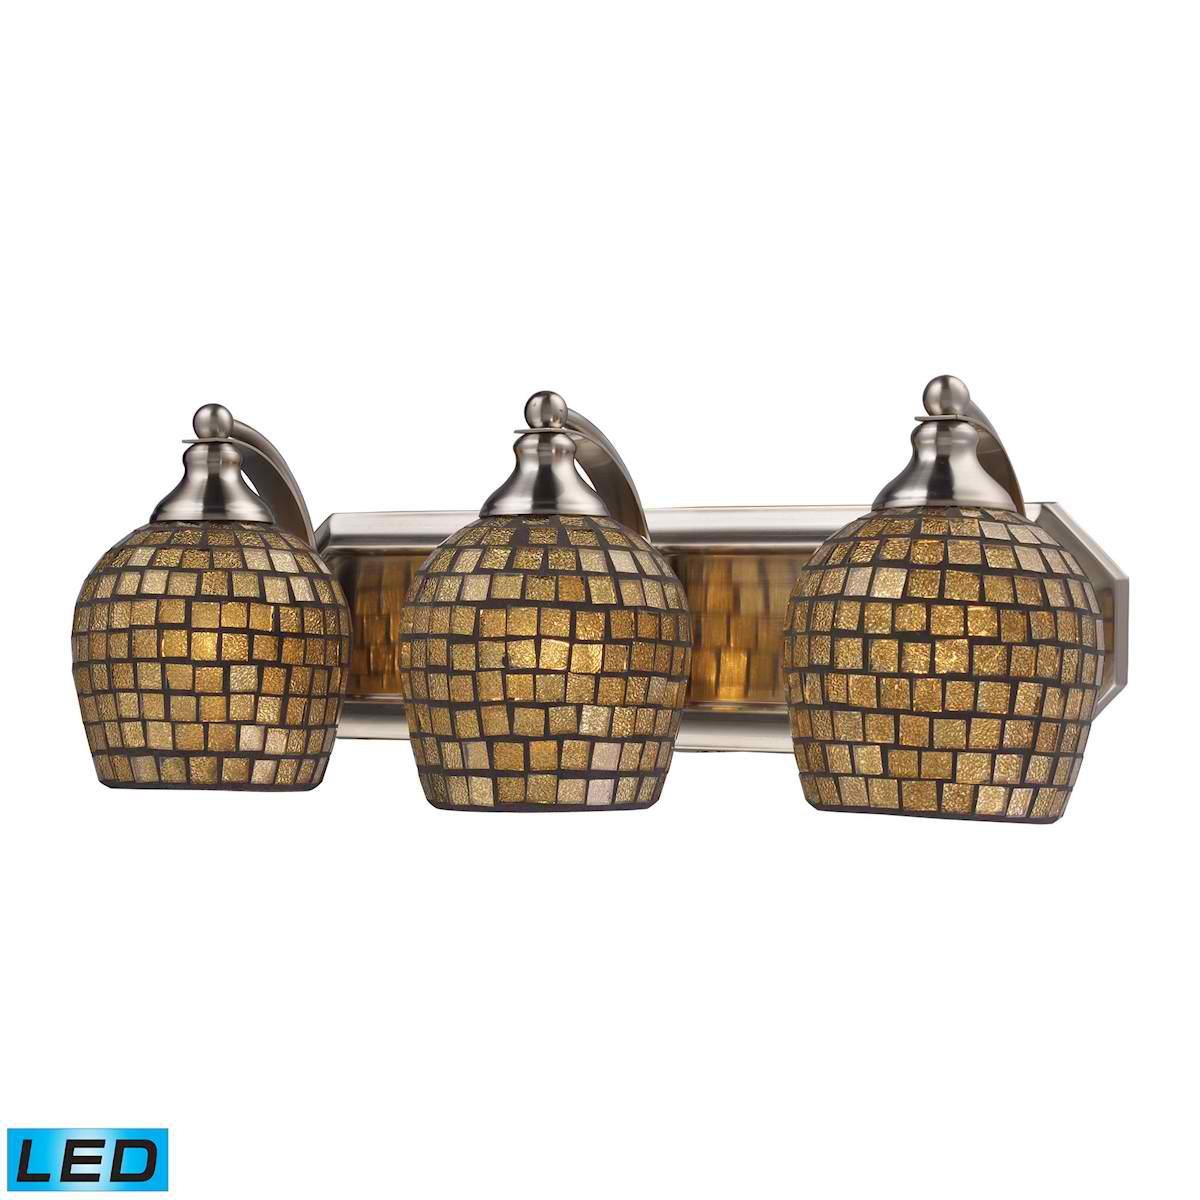 3 Light Vanity in Satin Nickel and Gold Mosaic Glass - LED, 800 Lumens (2400 Lumens Total) with Full Scale